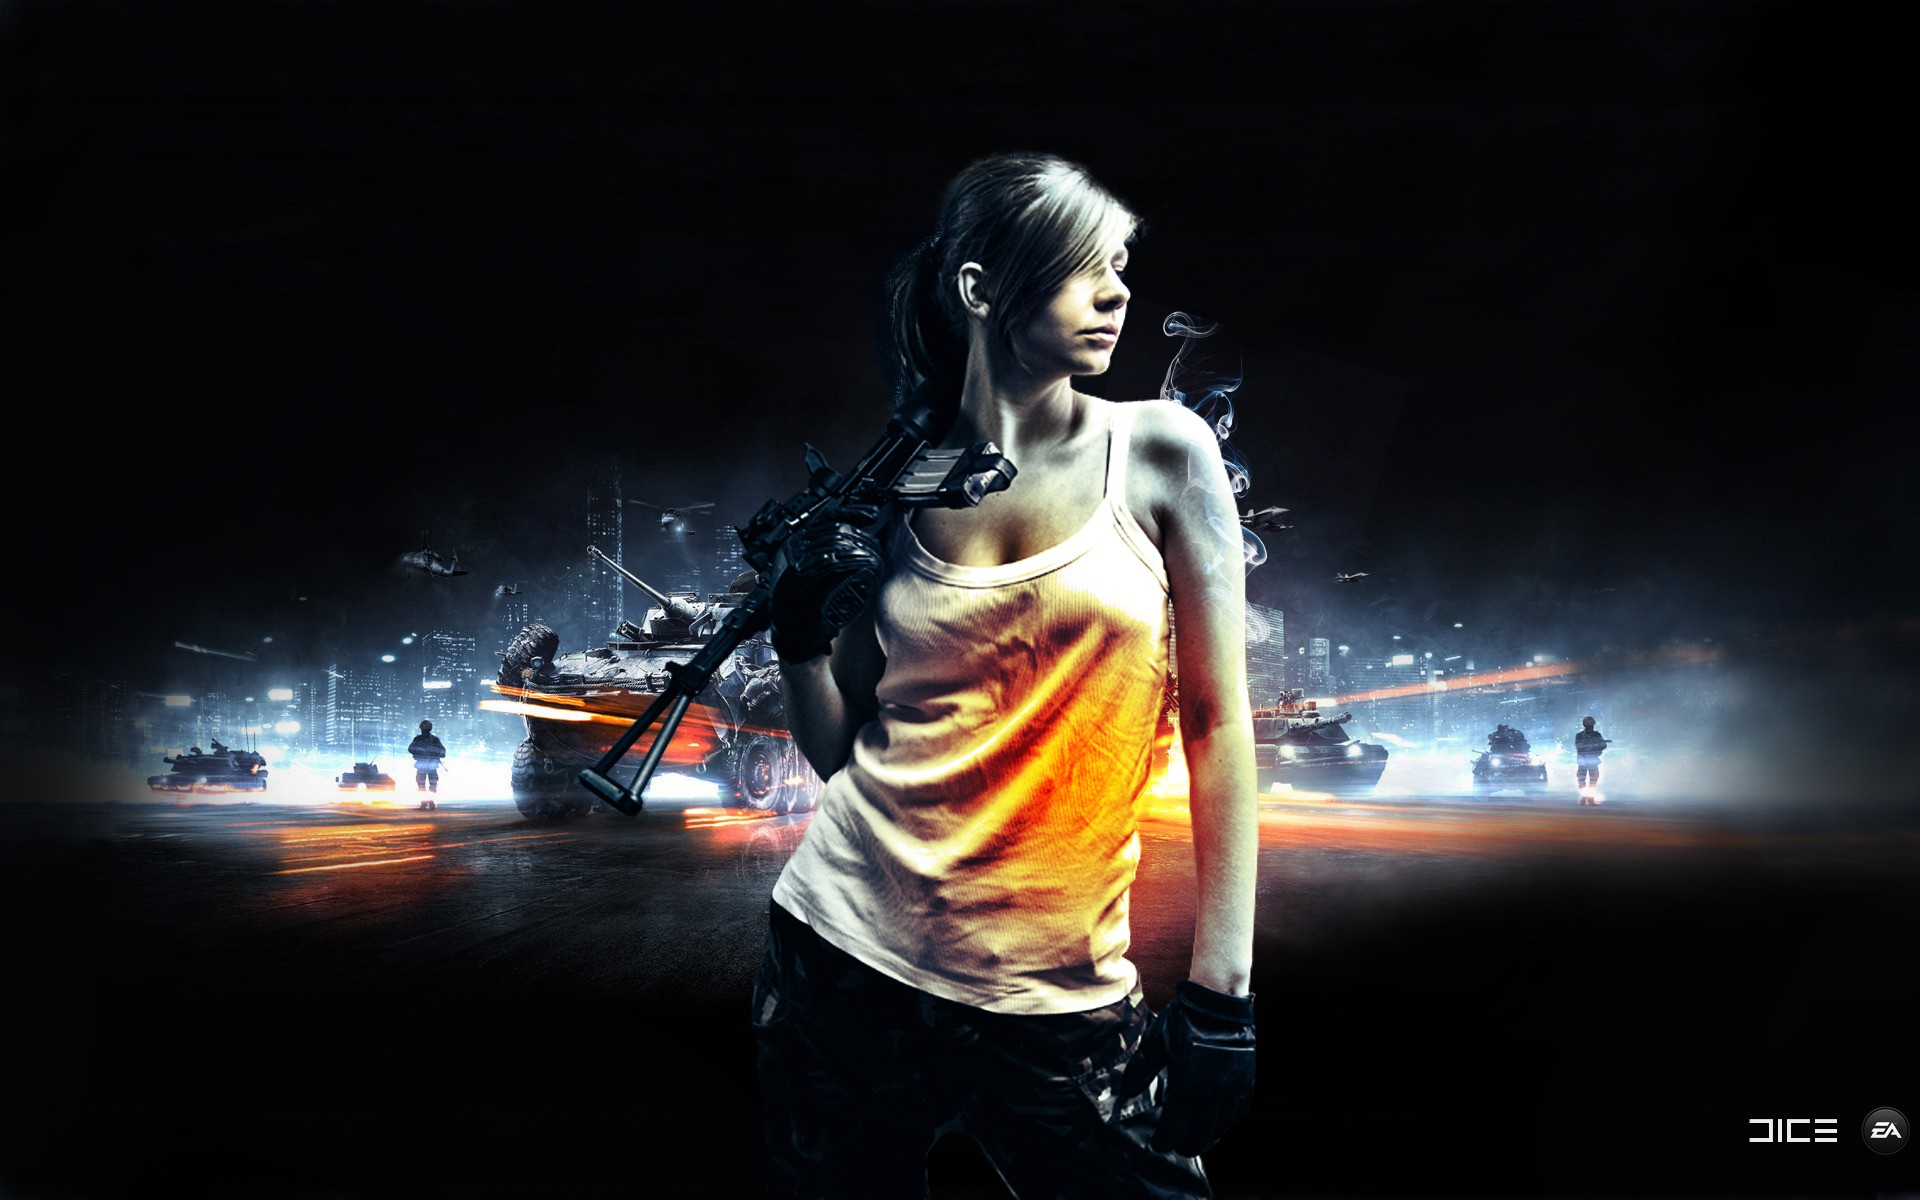 Secrets Of Happiness Hd Gun S Wallpaper: Battlefield 3 Tips And Tricks: IndieDB Group